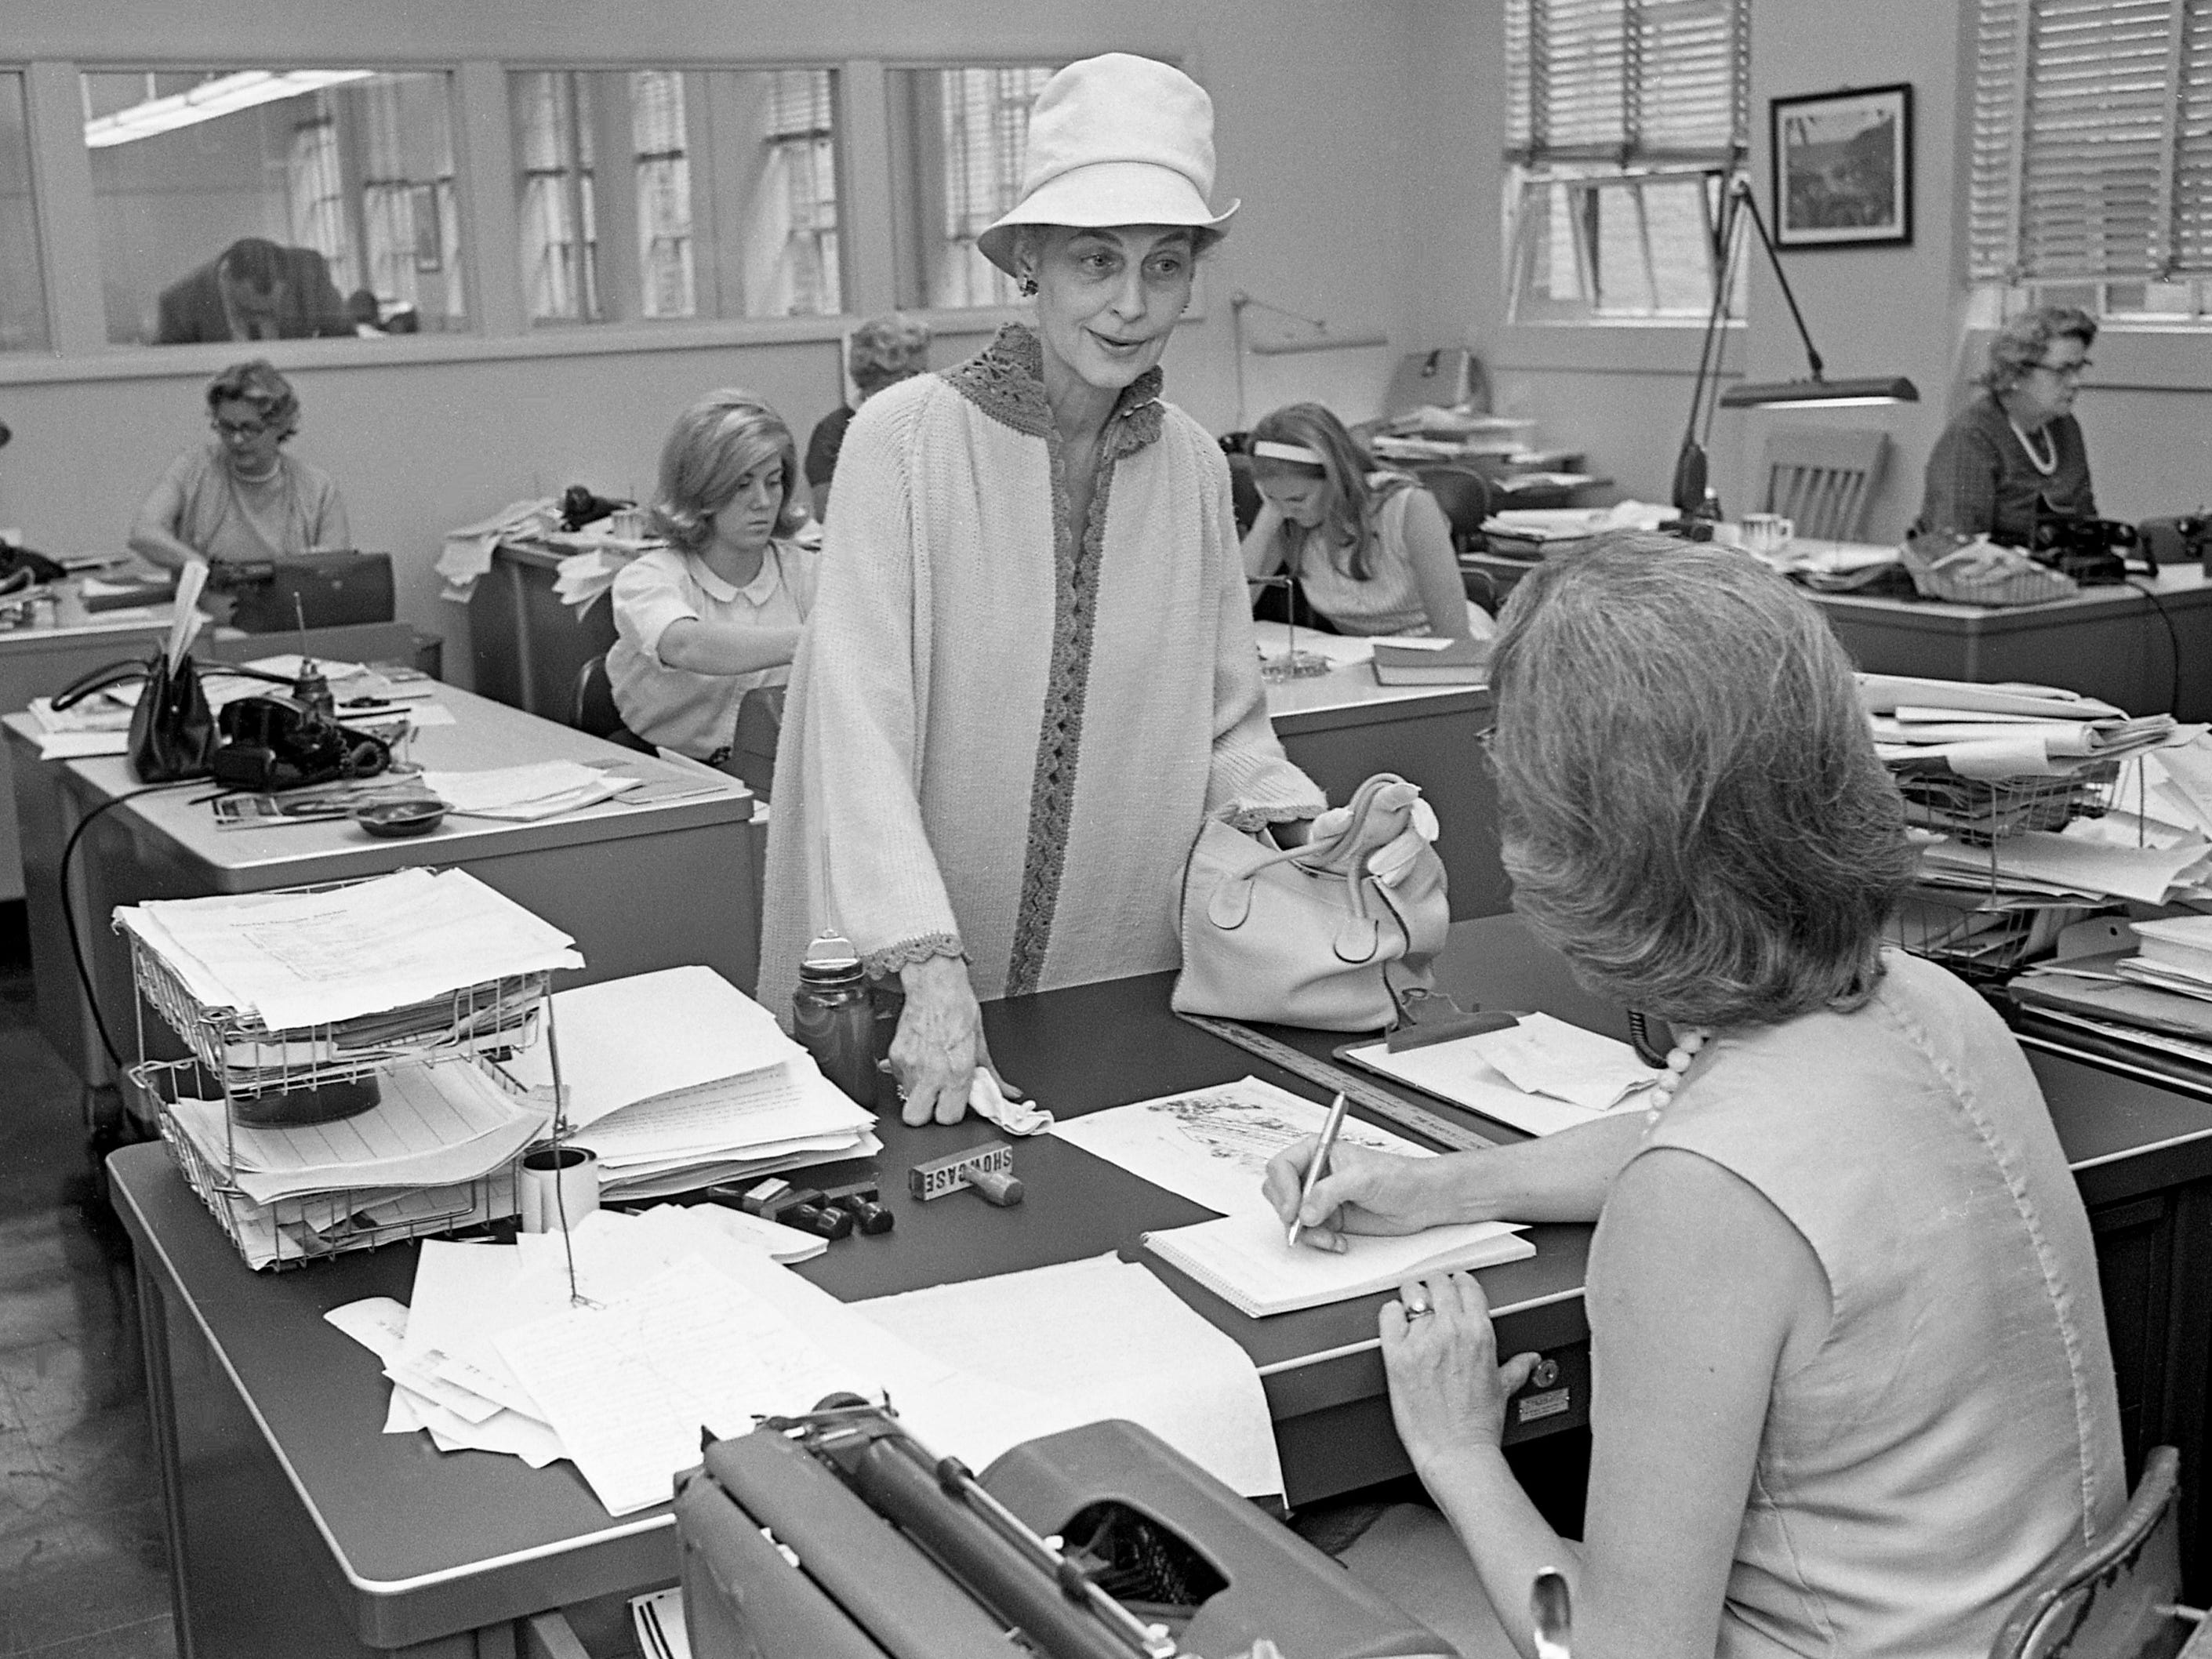 Romola Metzner, center, feature writer and fashion writer for the New York Journal American, visits The Tennessean on June 11, 1965. She was in town to cover the Swan Ball at Cheekwood the next night.